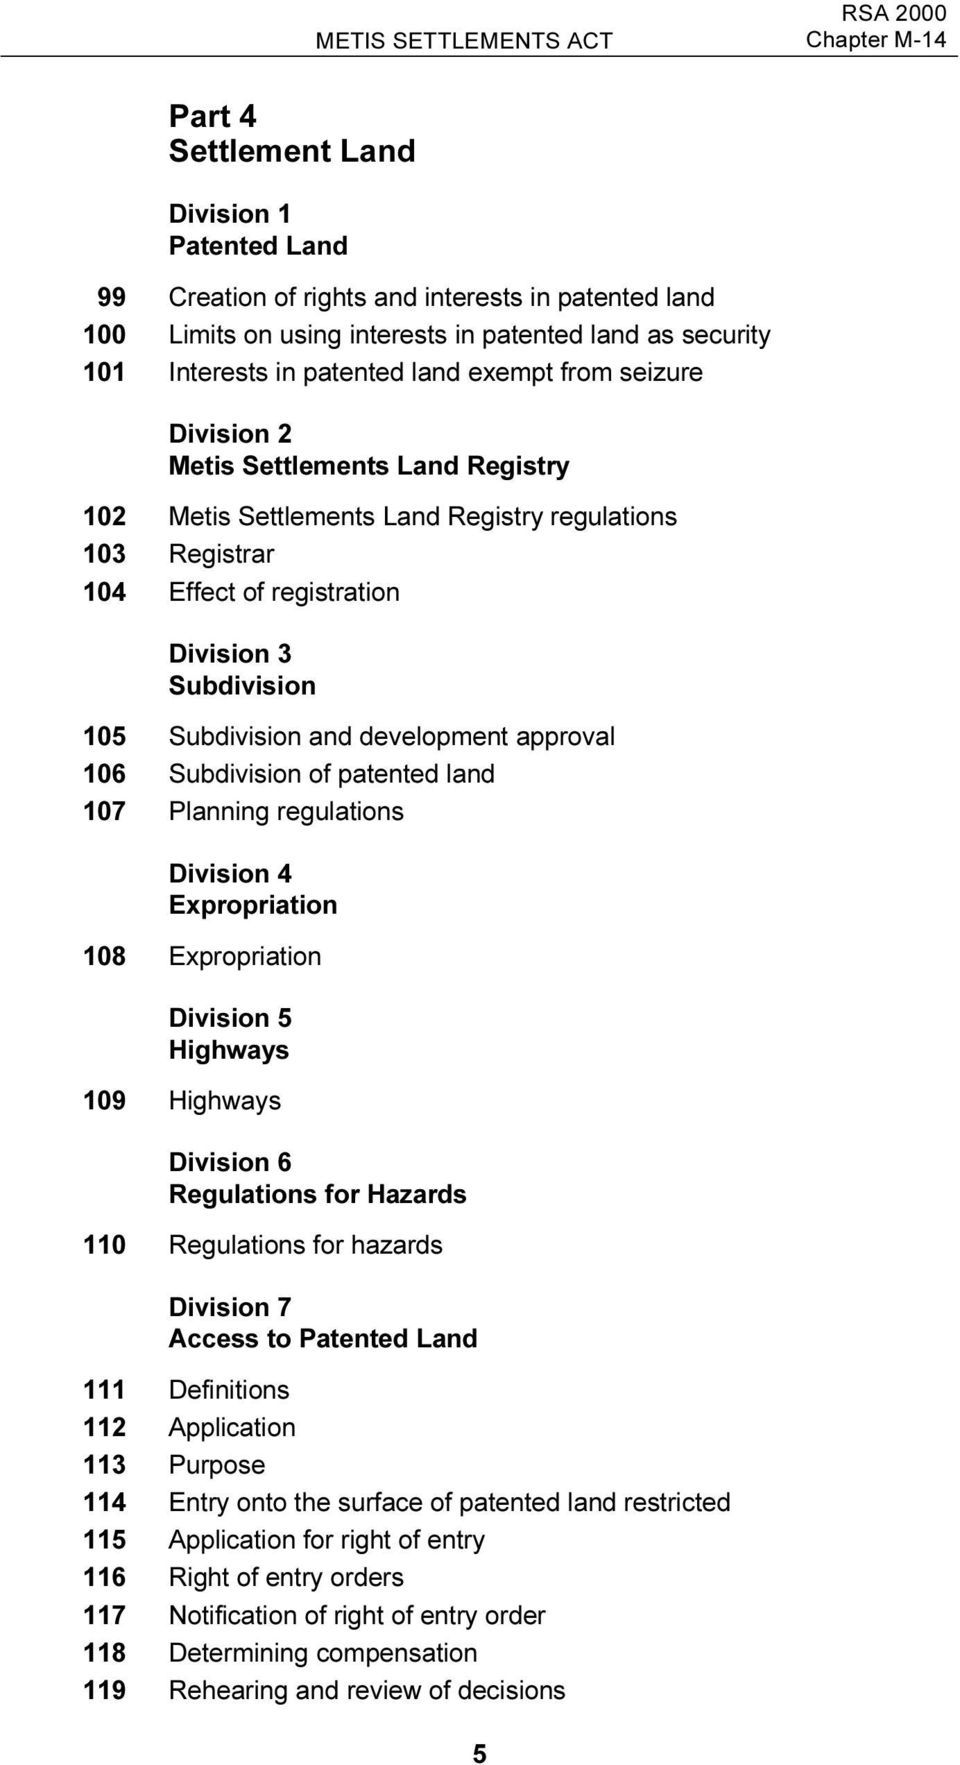 Subdivision 105 Subdivision and development approval 106 Subdivision of patented land 107 Planning regulations Division 4 Expropriation 108 Expropriation Division 5 Highways 109 Highways Division 6